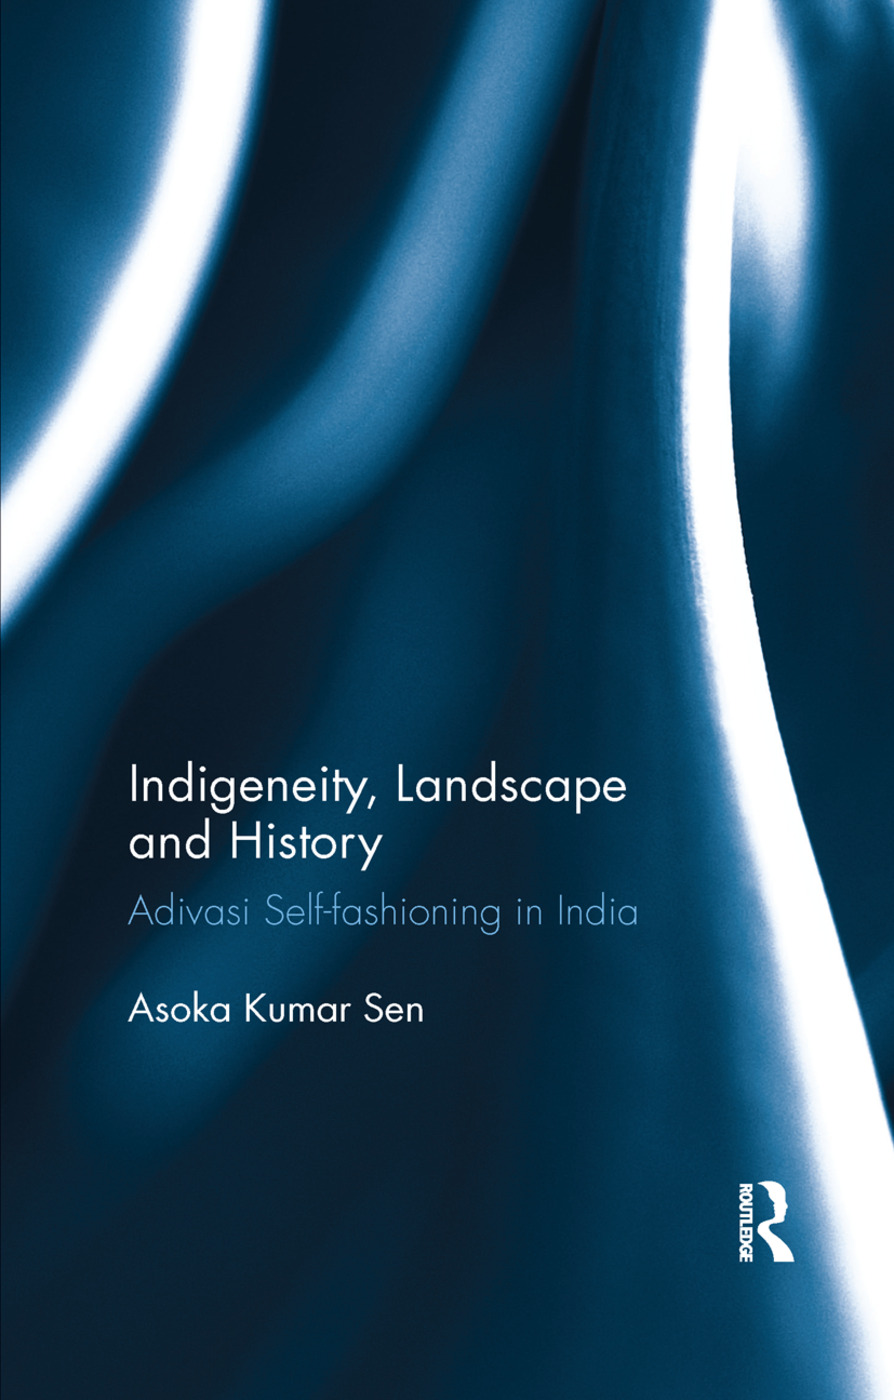 Indigeneity, Landscape and History: Adivasi Self-fashioning in India book cover